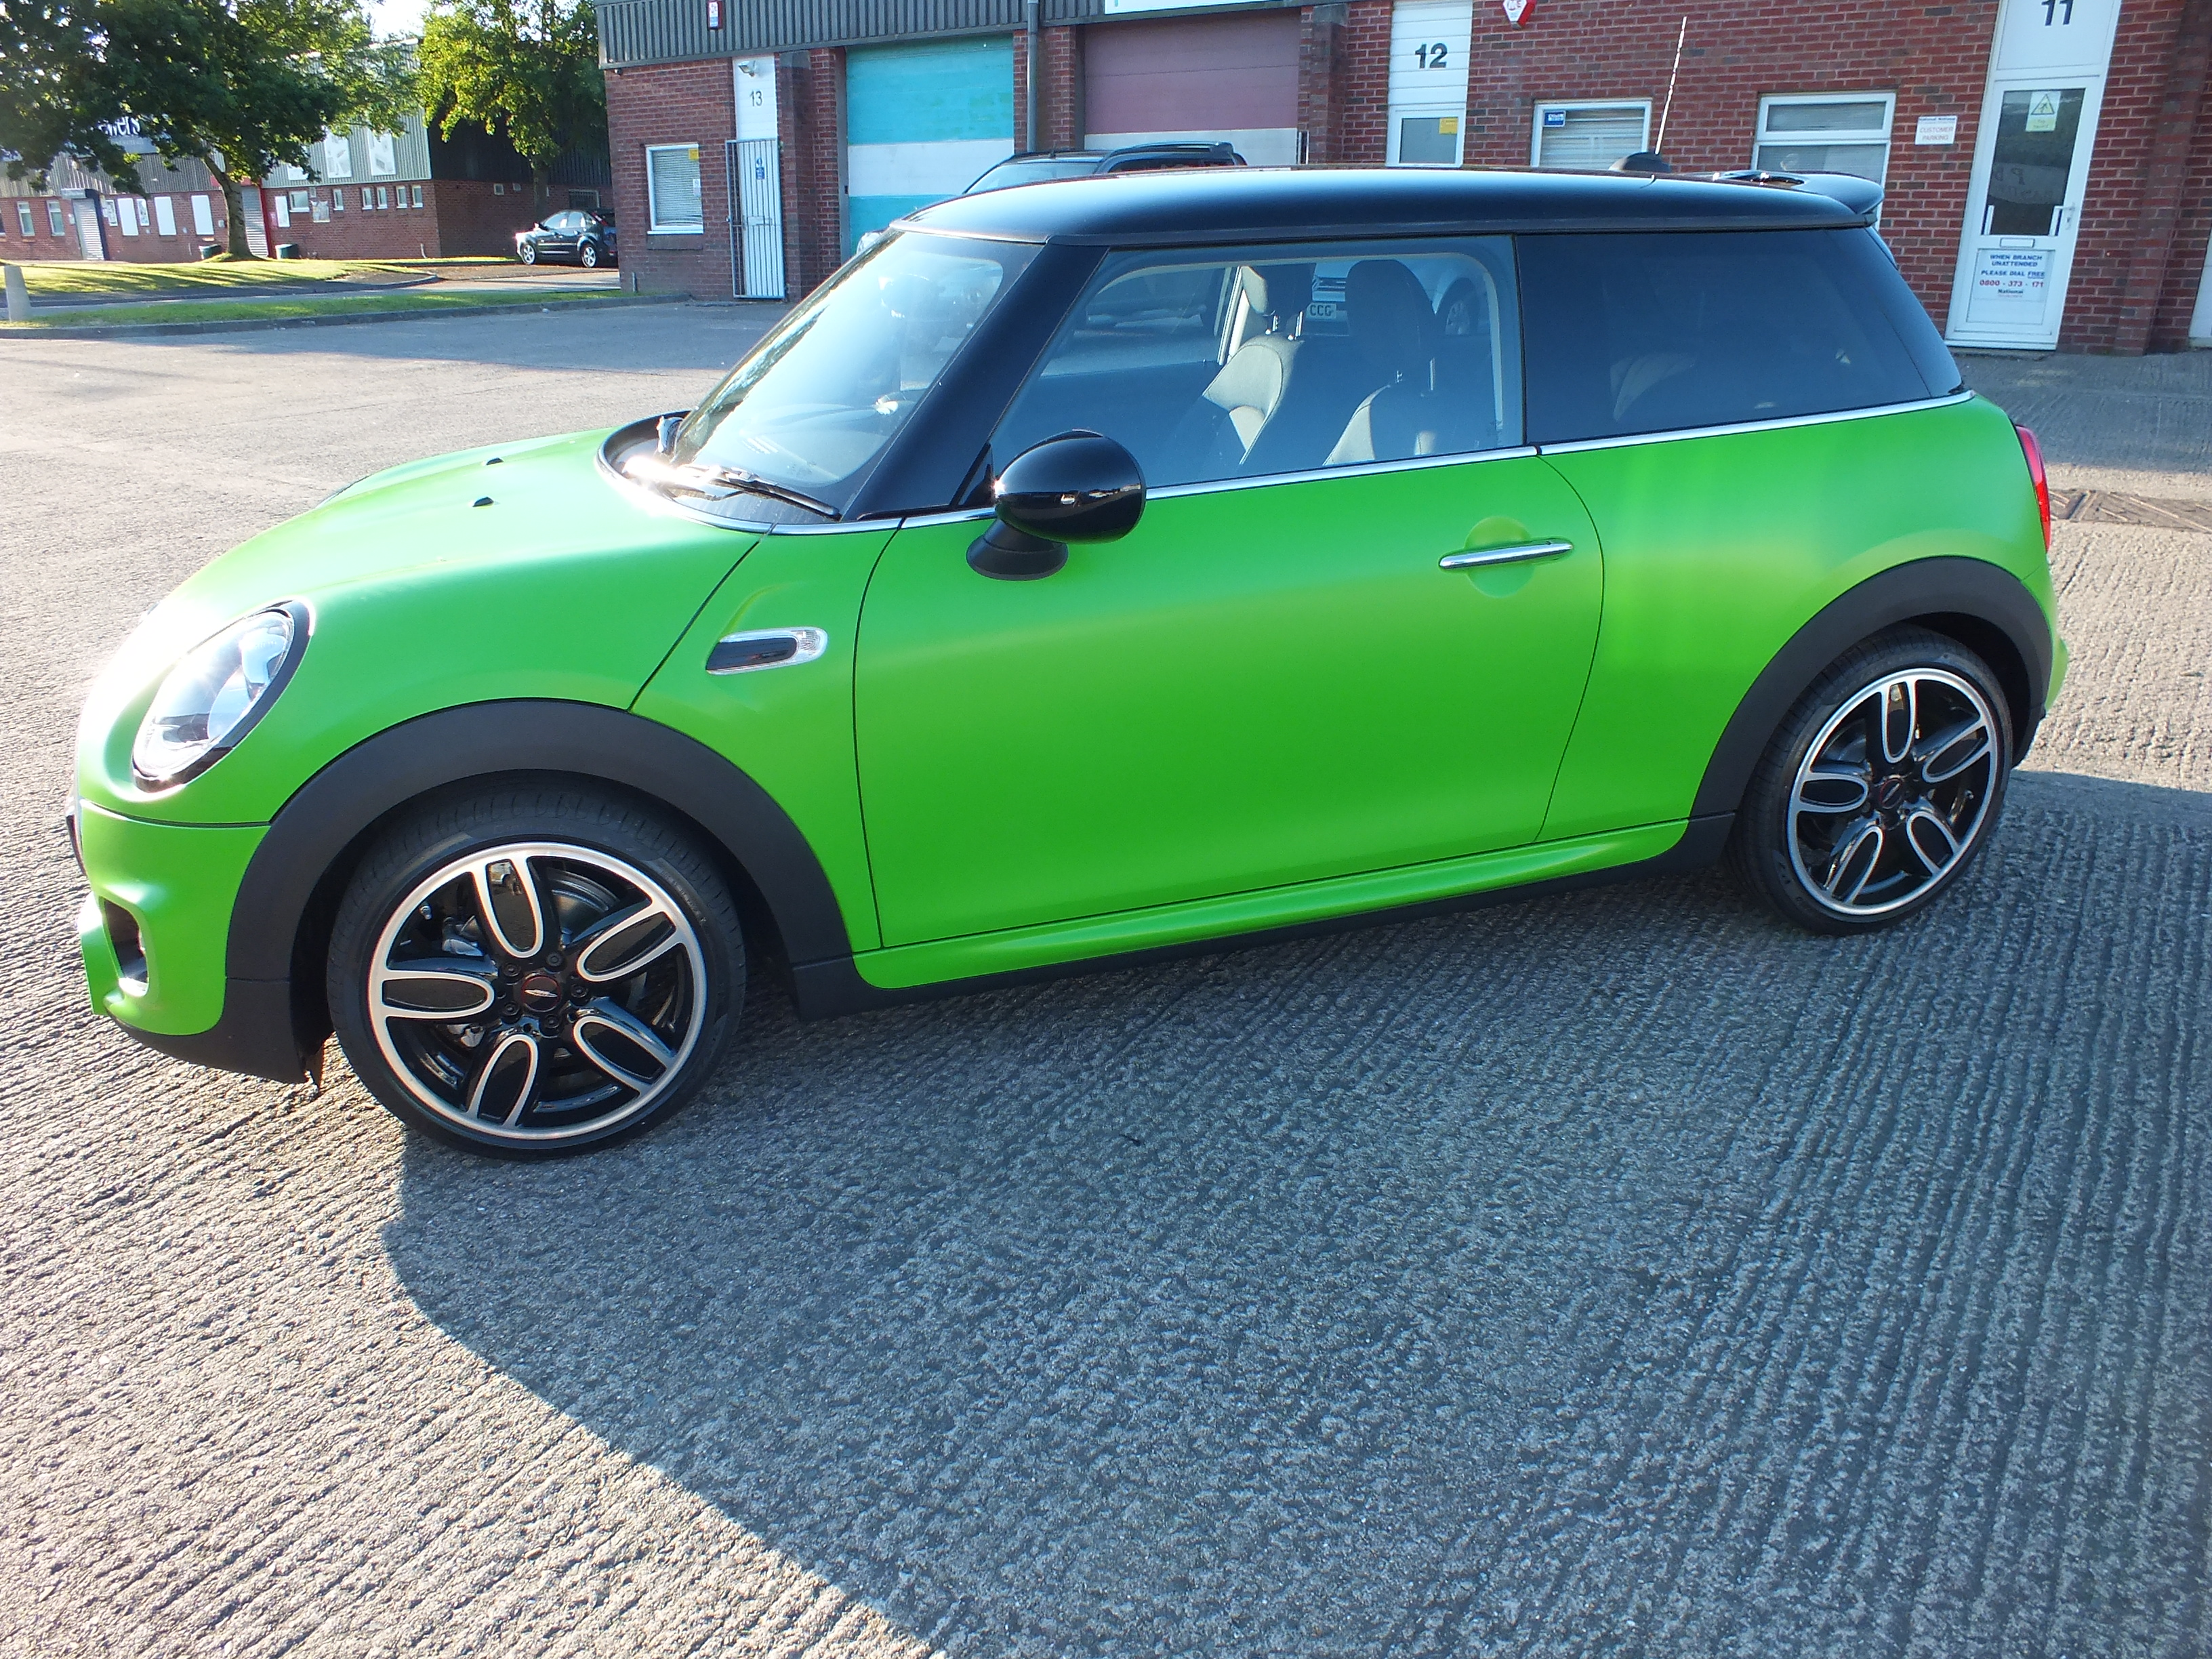 3M Satin Apple Green vinyl car wrap on a Mini Cooper by Tinting Express Ltd